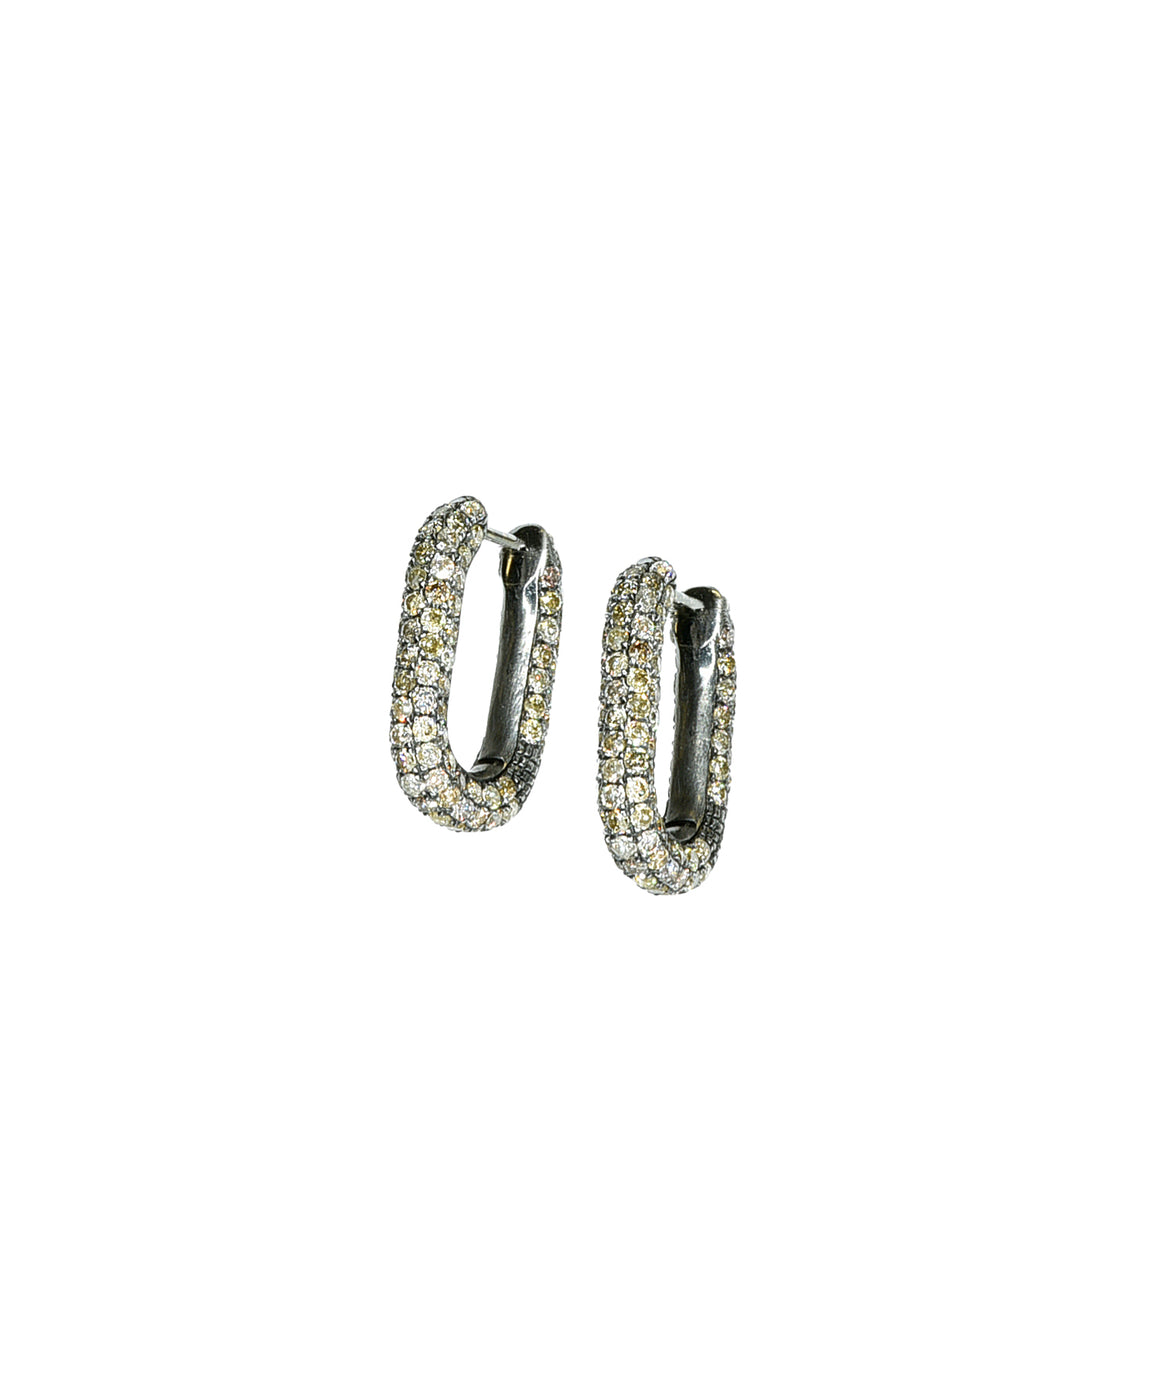 Brown diamond link earrings - Lesley Ann Jewels